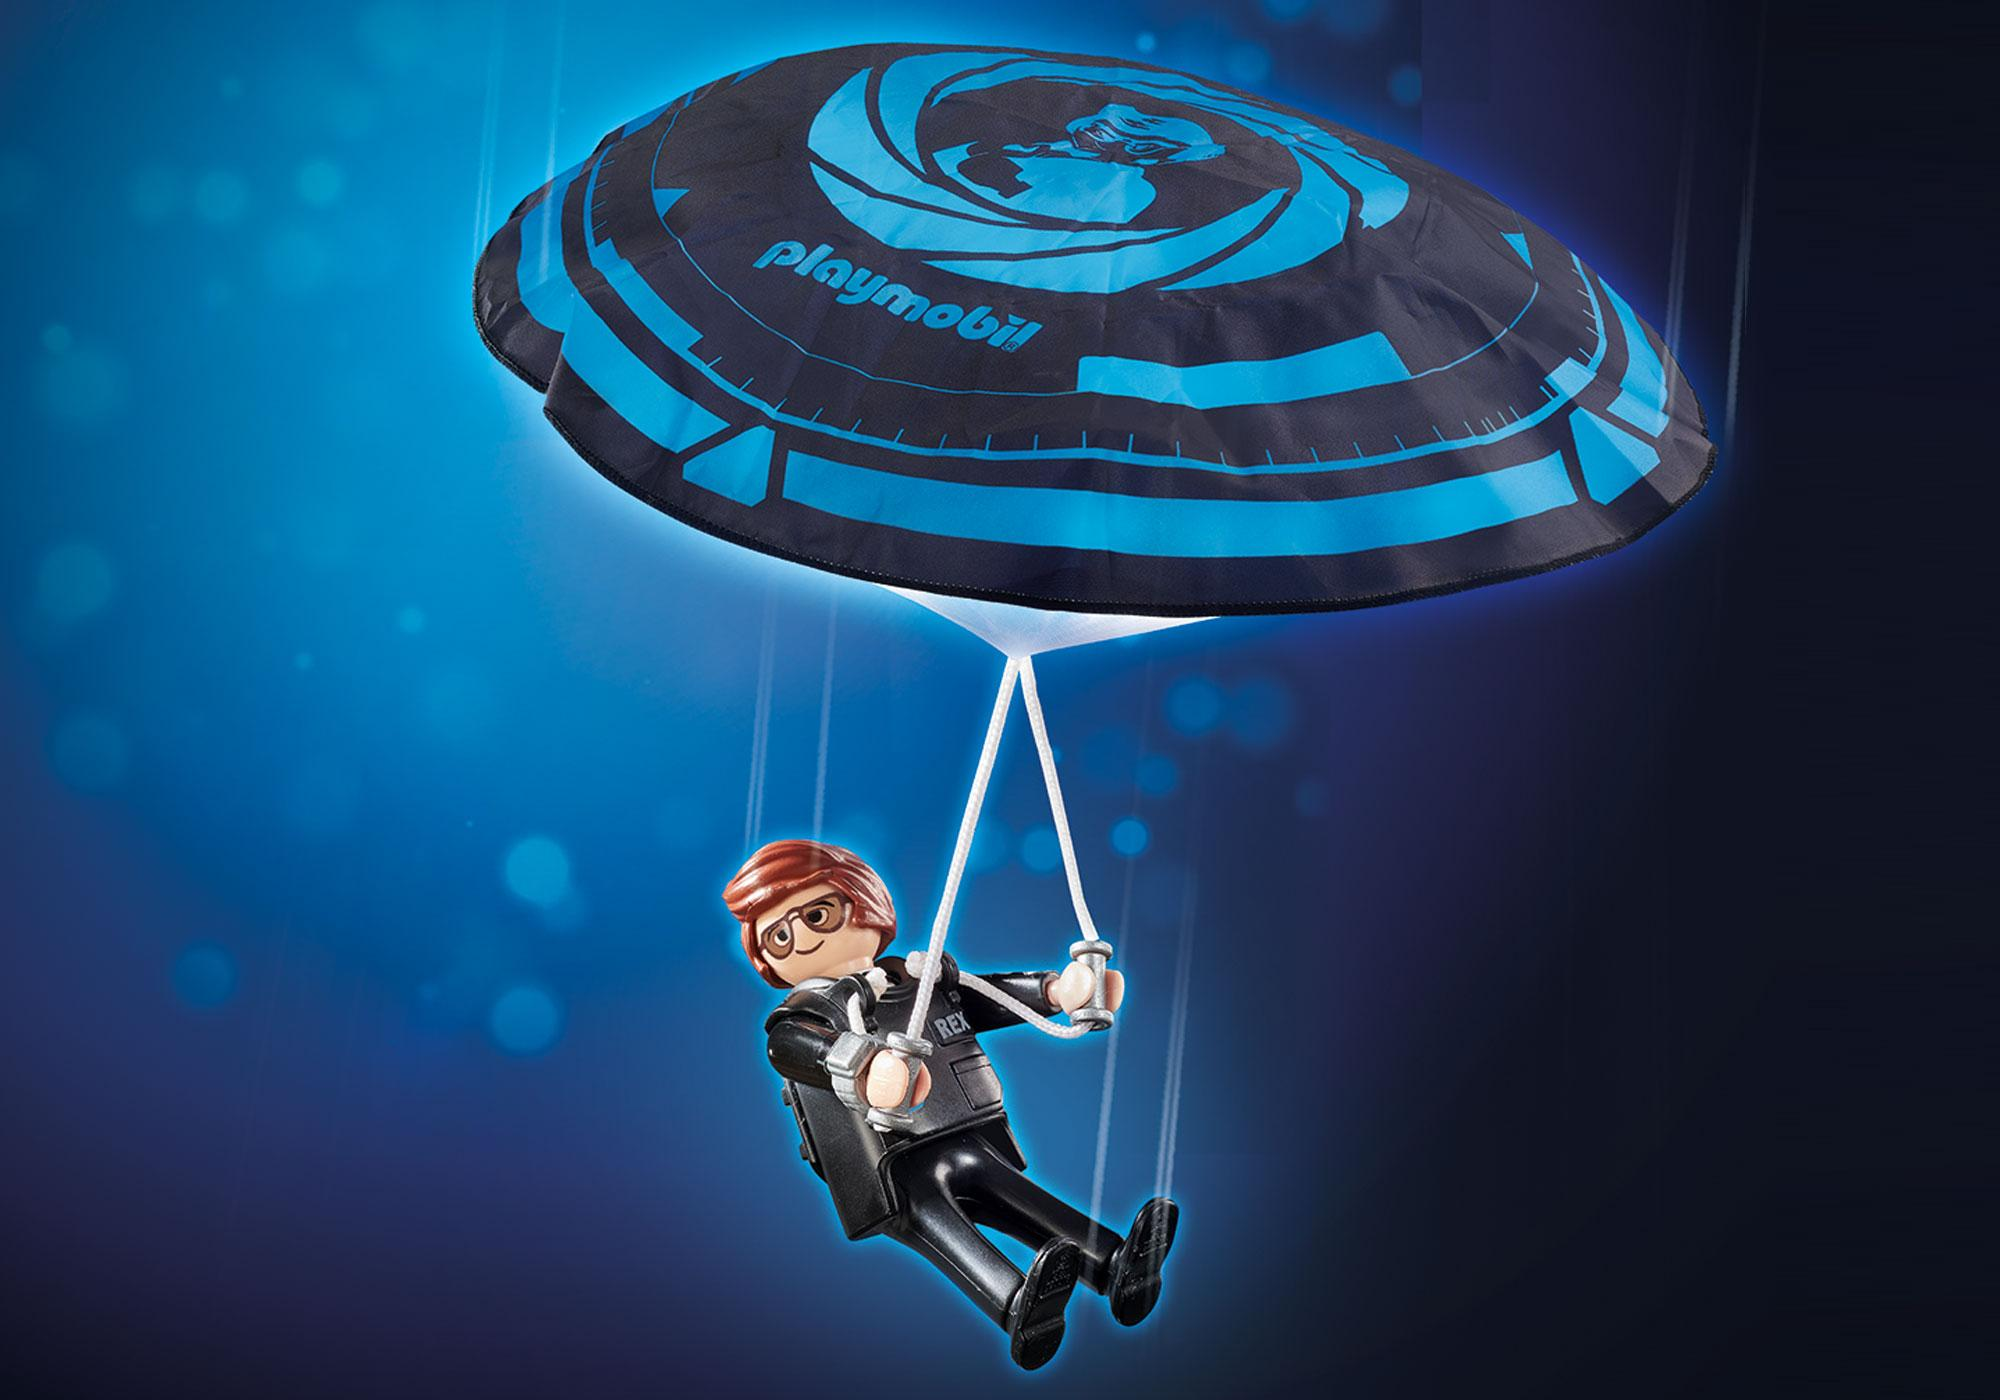 70070_product_detail/PLAYMOBIL: THE MOVIE Rex Dasher met parachute